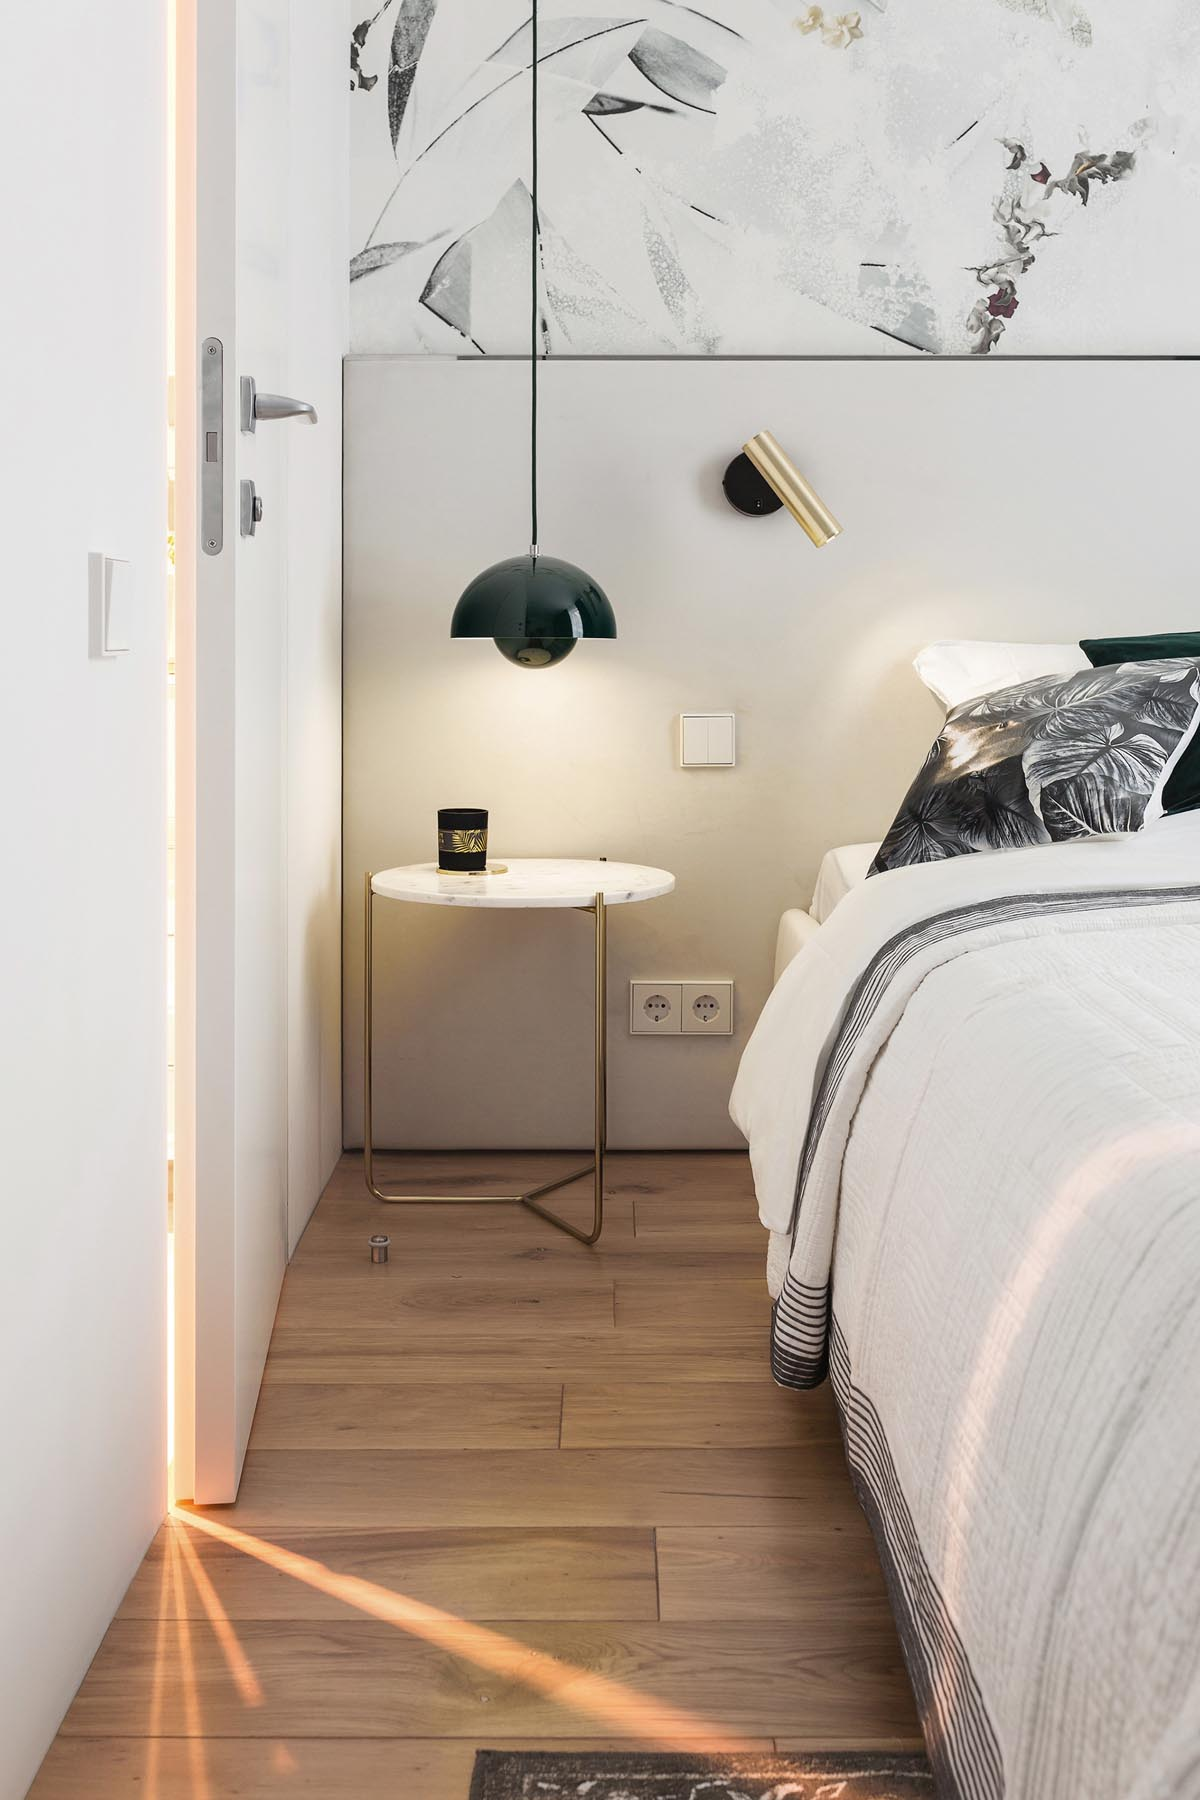 4 Small Space Apartments That Use Clever Ways To Maximize Space images 26